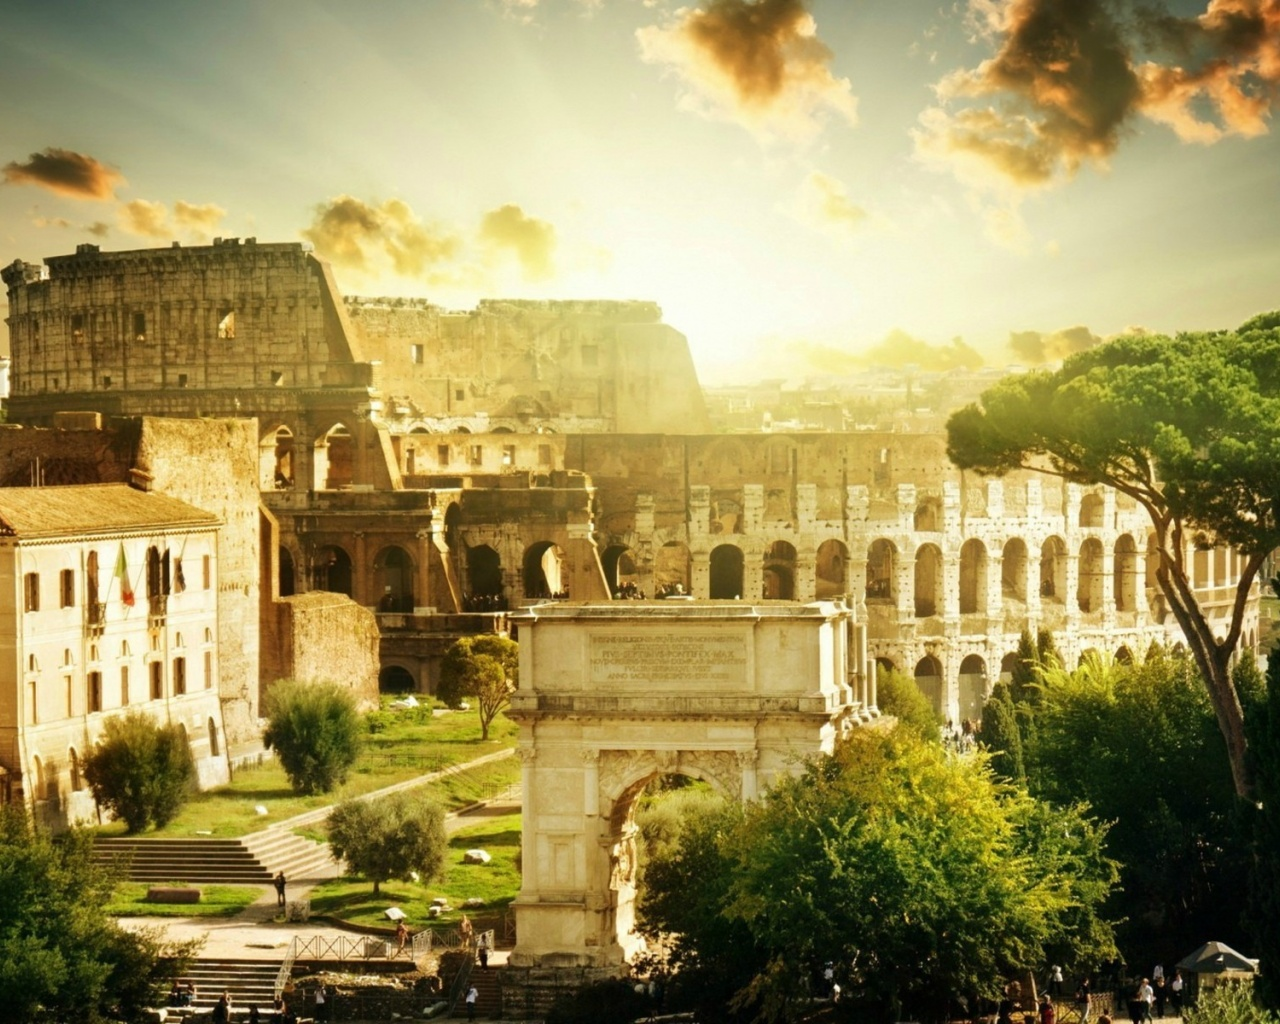 Cool Wallpaper Night Colosseum - colosseum-rome_wallpapers_43408_1280x1024  Picture.jpg